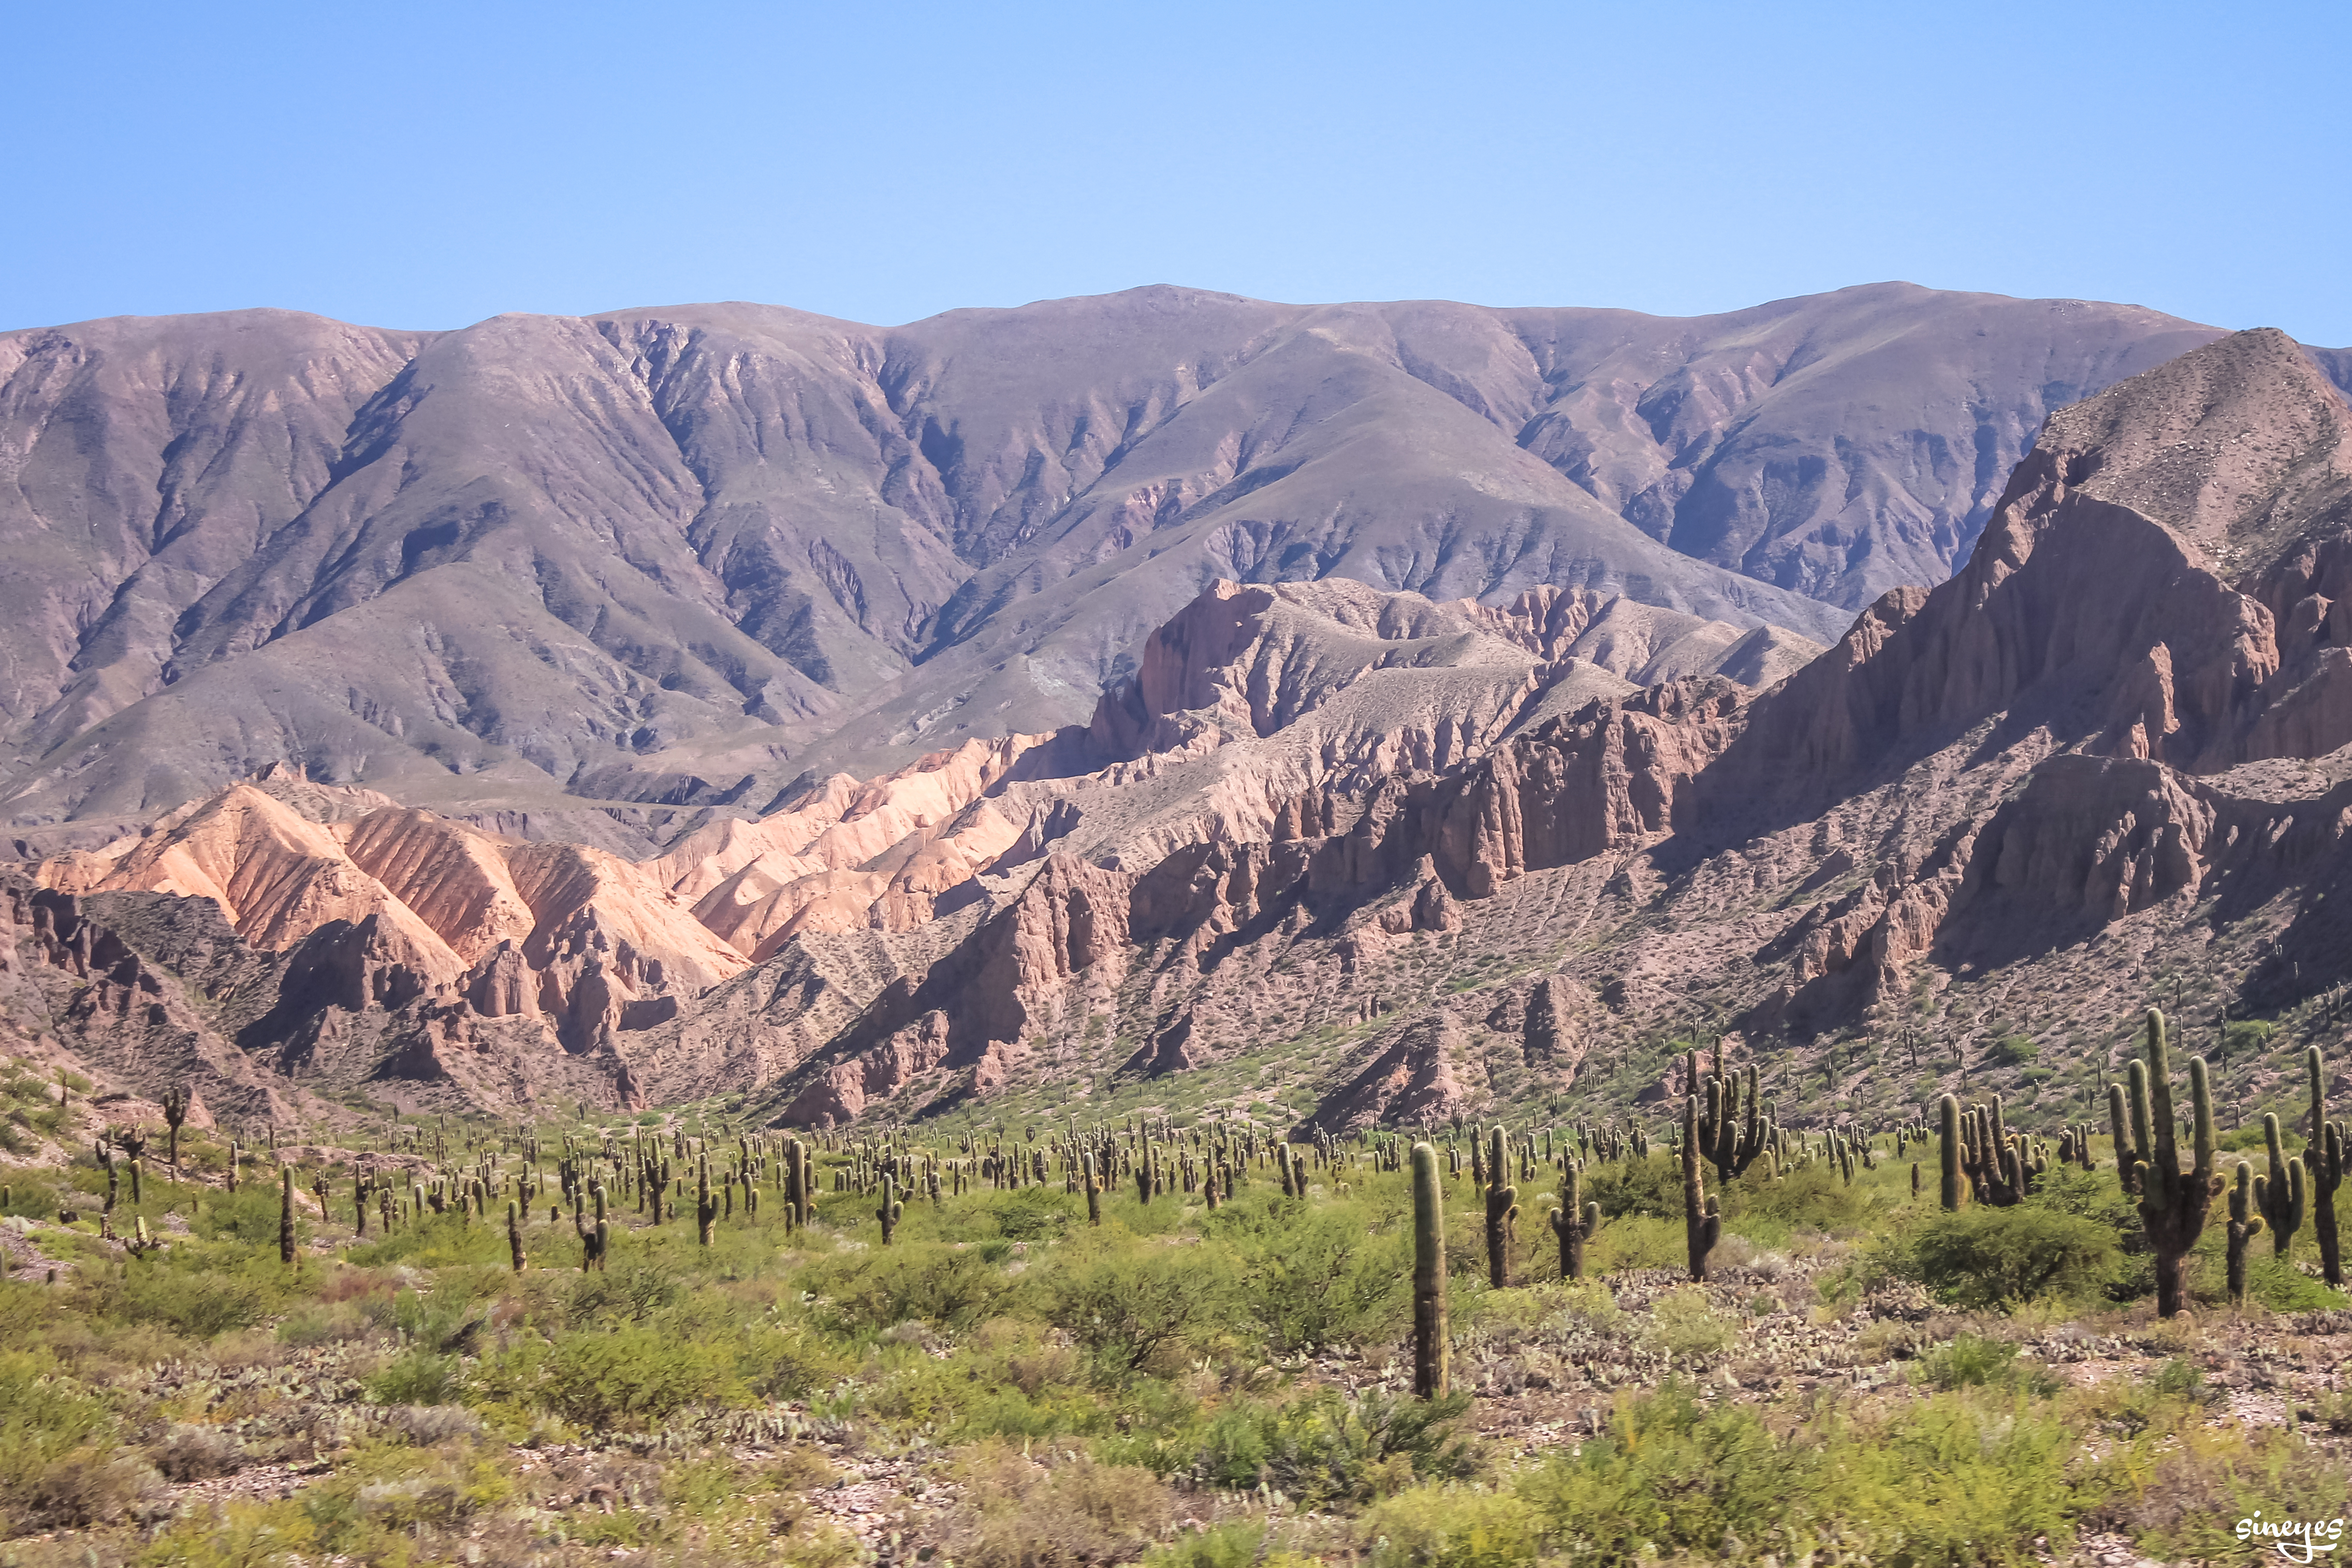 Welcome to nowhere - Quebrada de Humahuaca, Argentine by sineyes